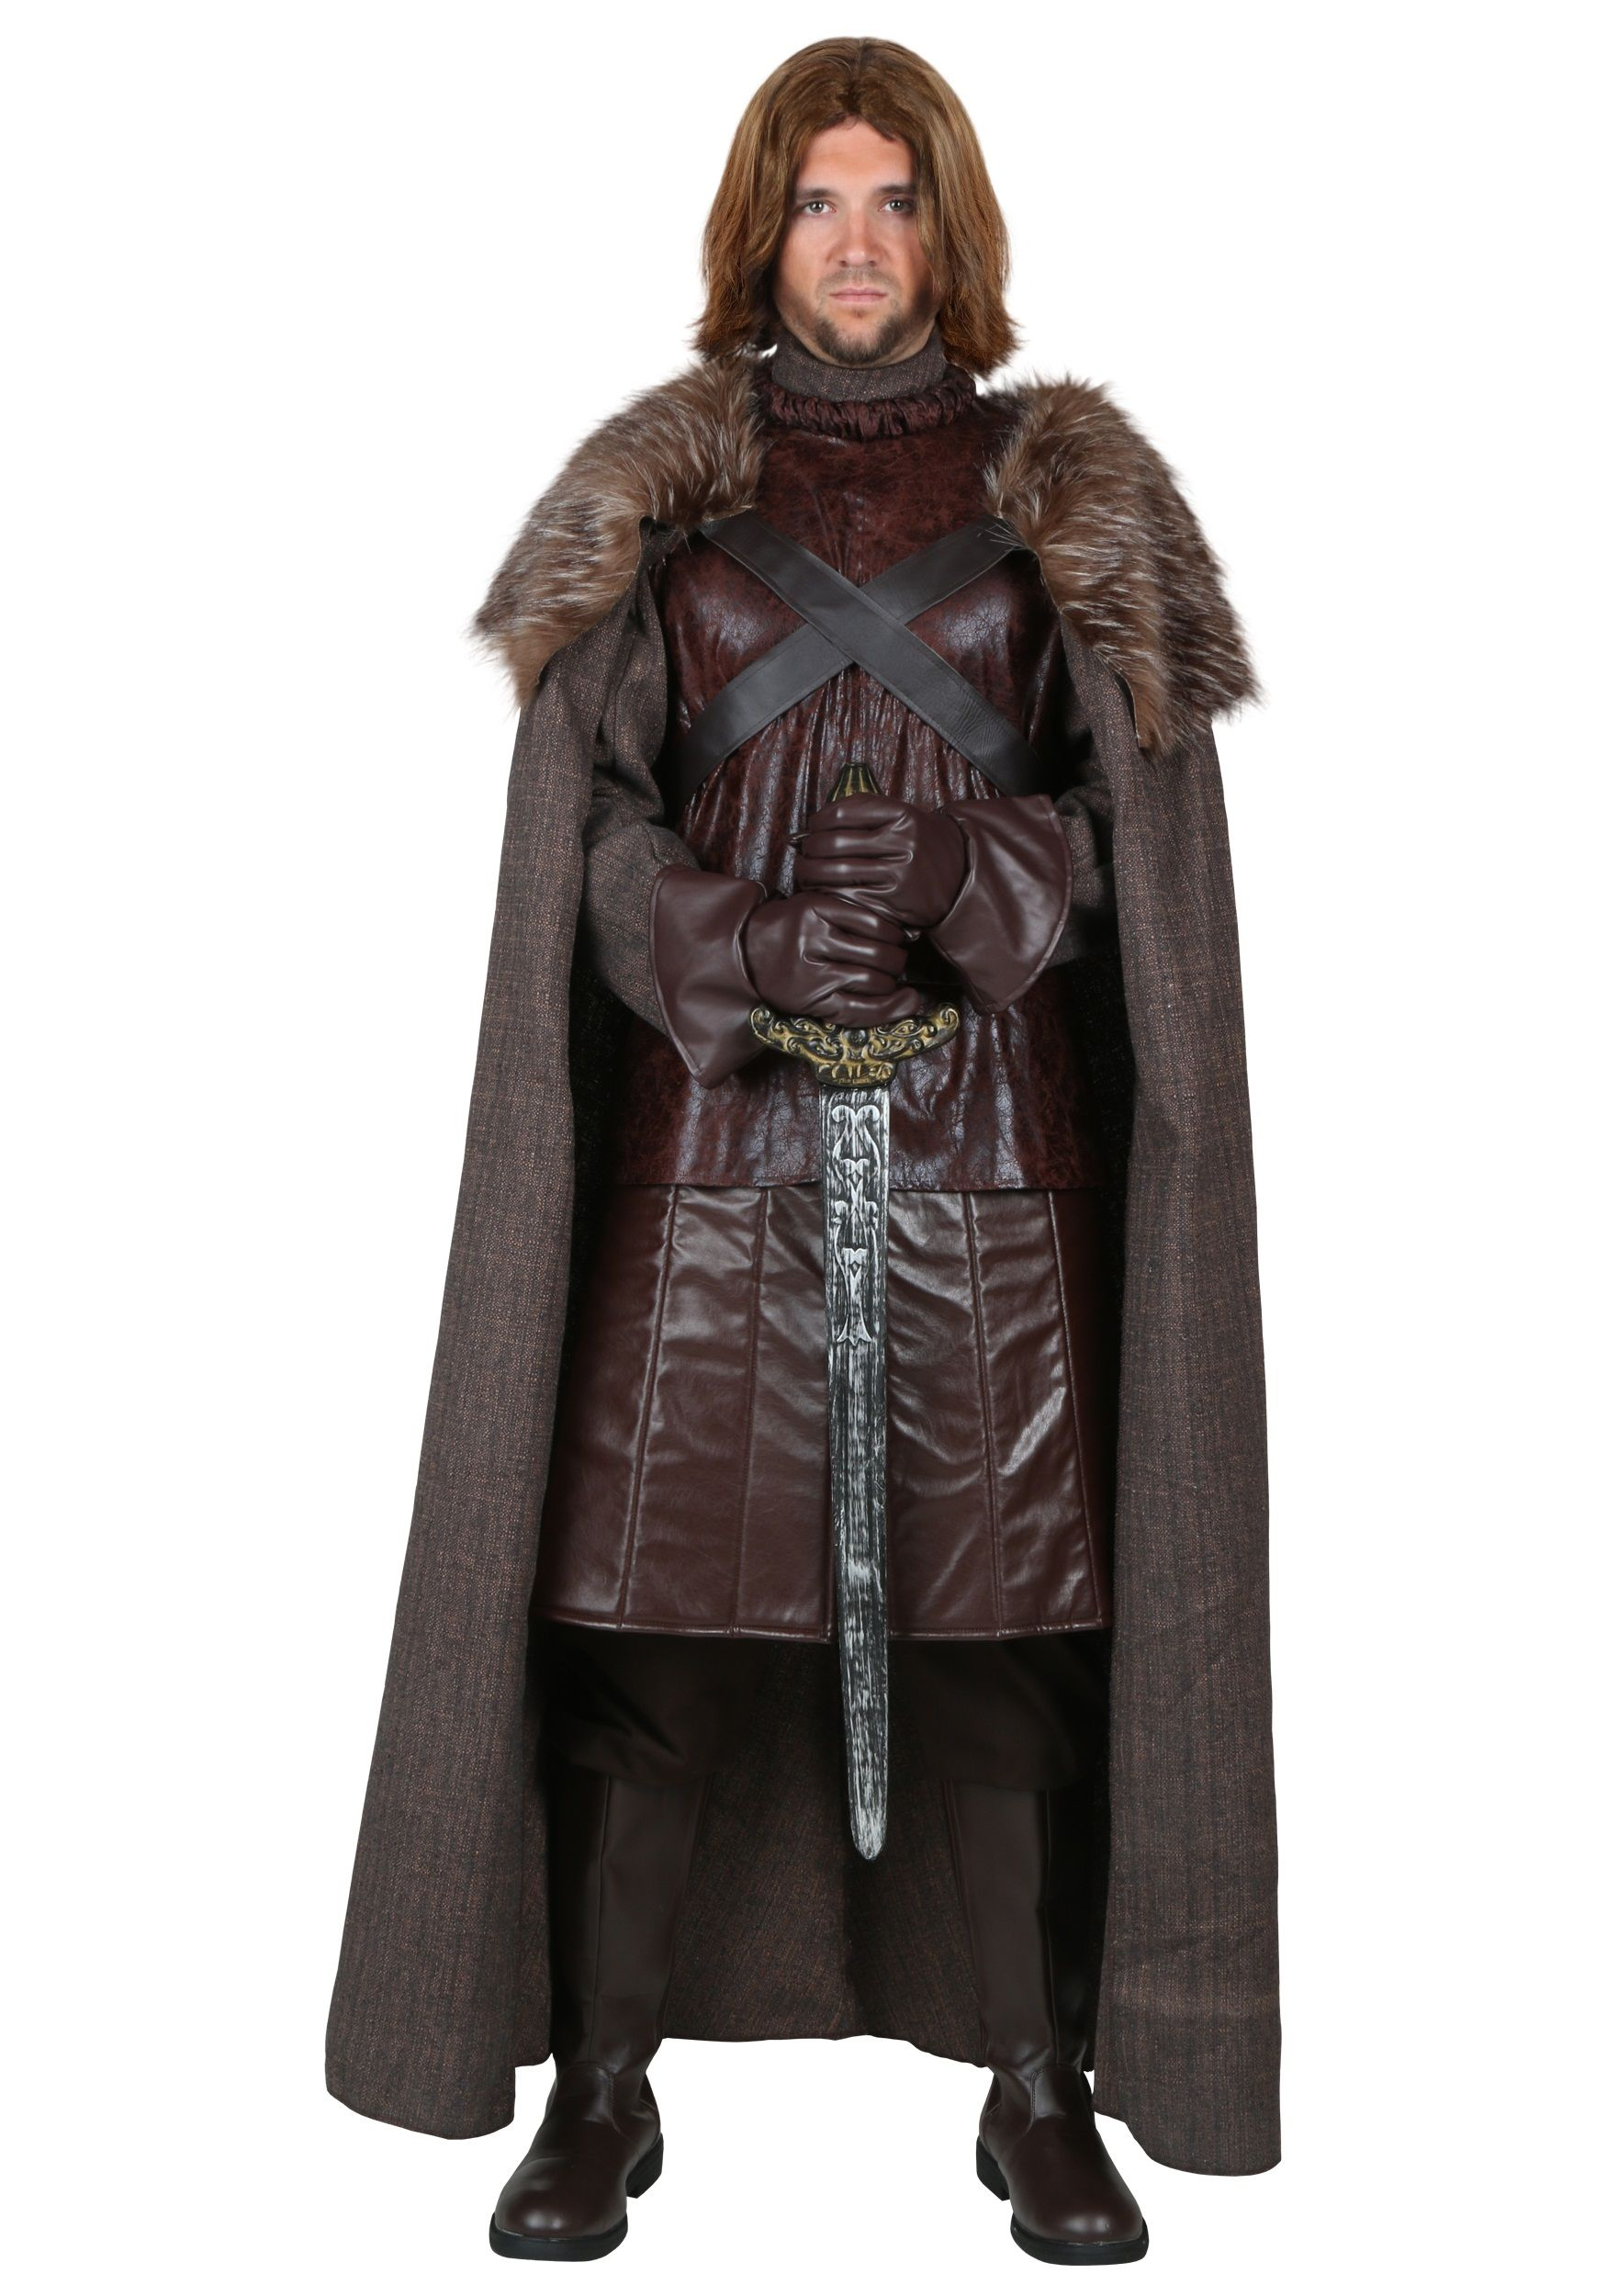 Northern King Costume | King costume and Costumes